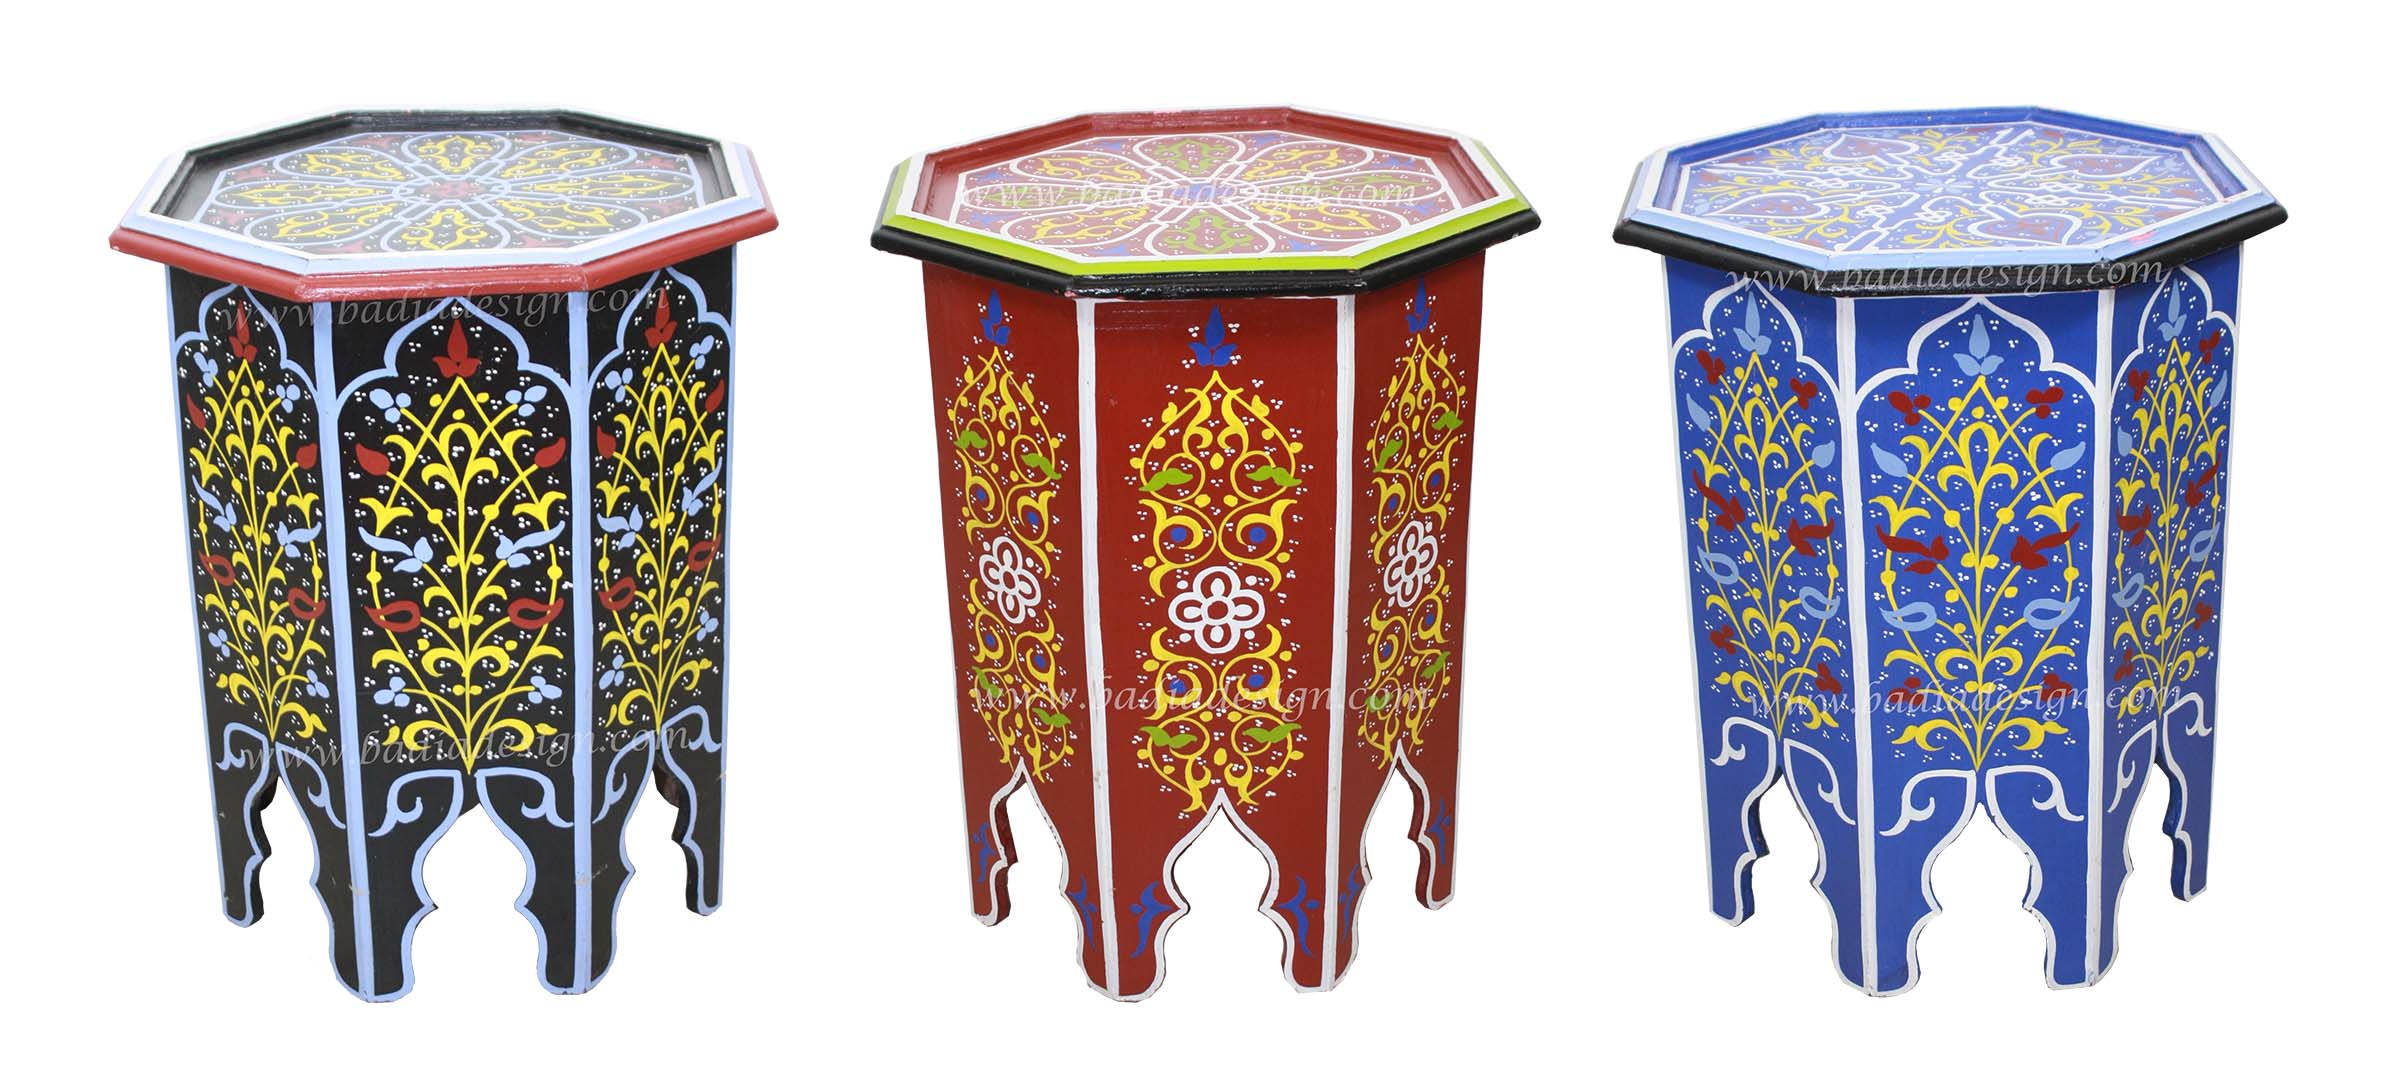 moroccan-hand-painted-side-table-hp322.jpg